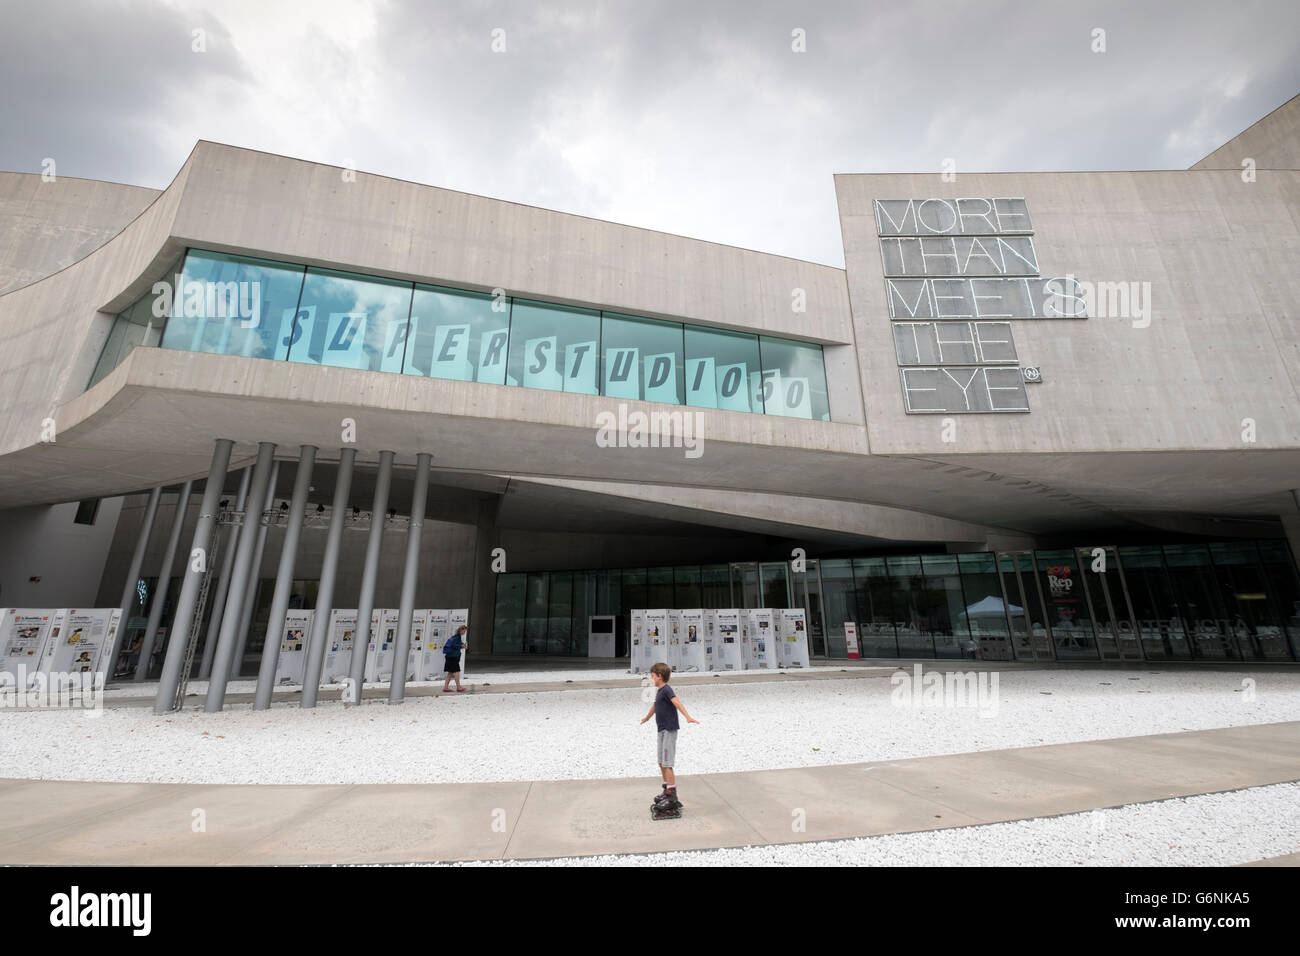 Exterior of MAXXI National Centre of Contemporary Arts designed by Zaha Hadid in Rome, Italy - Stock Image